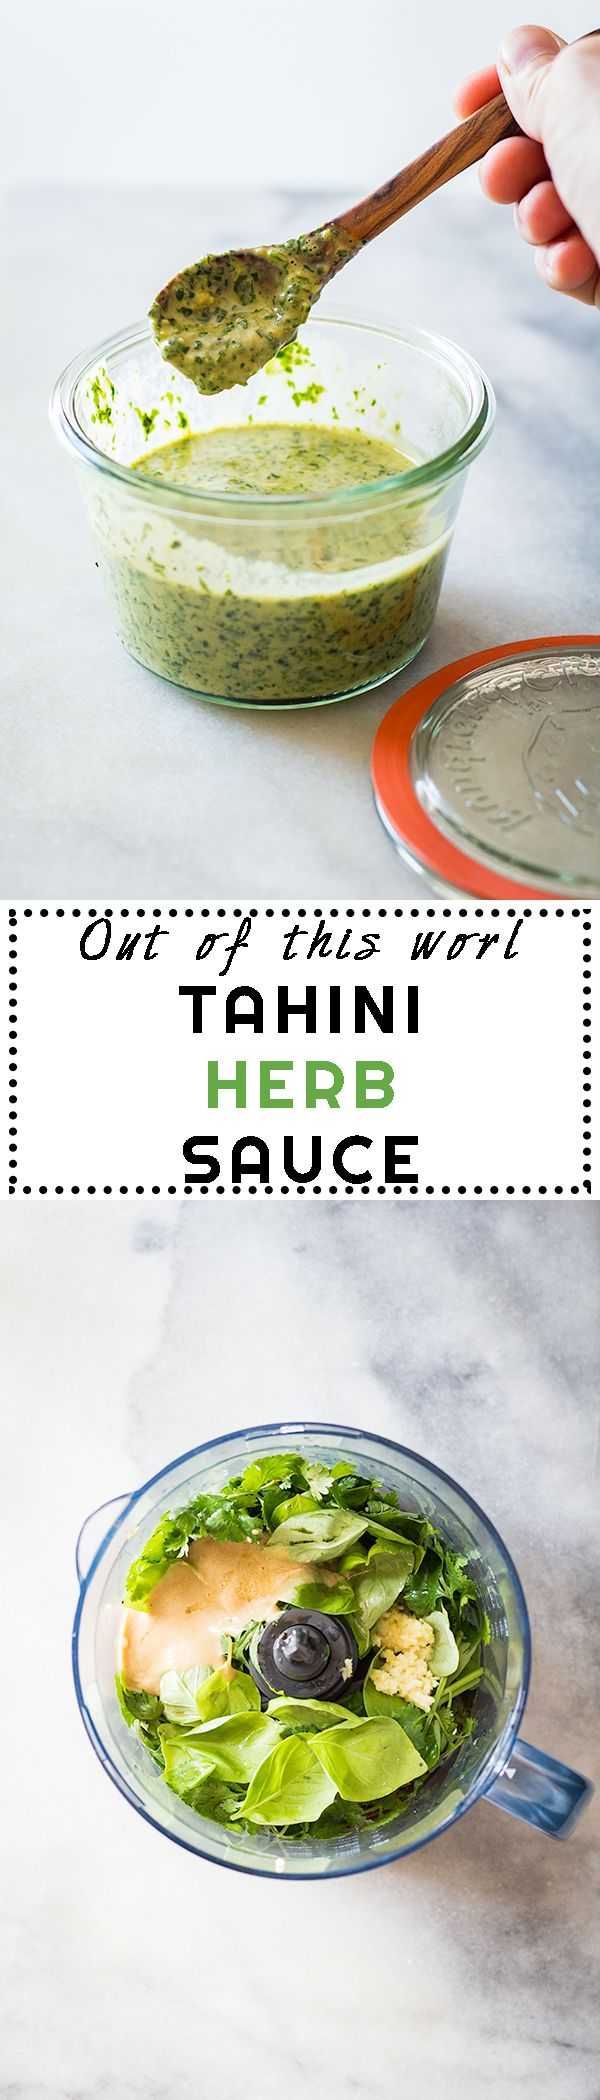 A recipe for an Out of This World Tahini Herb Sauce (basil, parsley, tahini, garlic,...) to spread over tacos, pizza, chicken, shrimp, eeeverything!